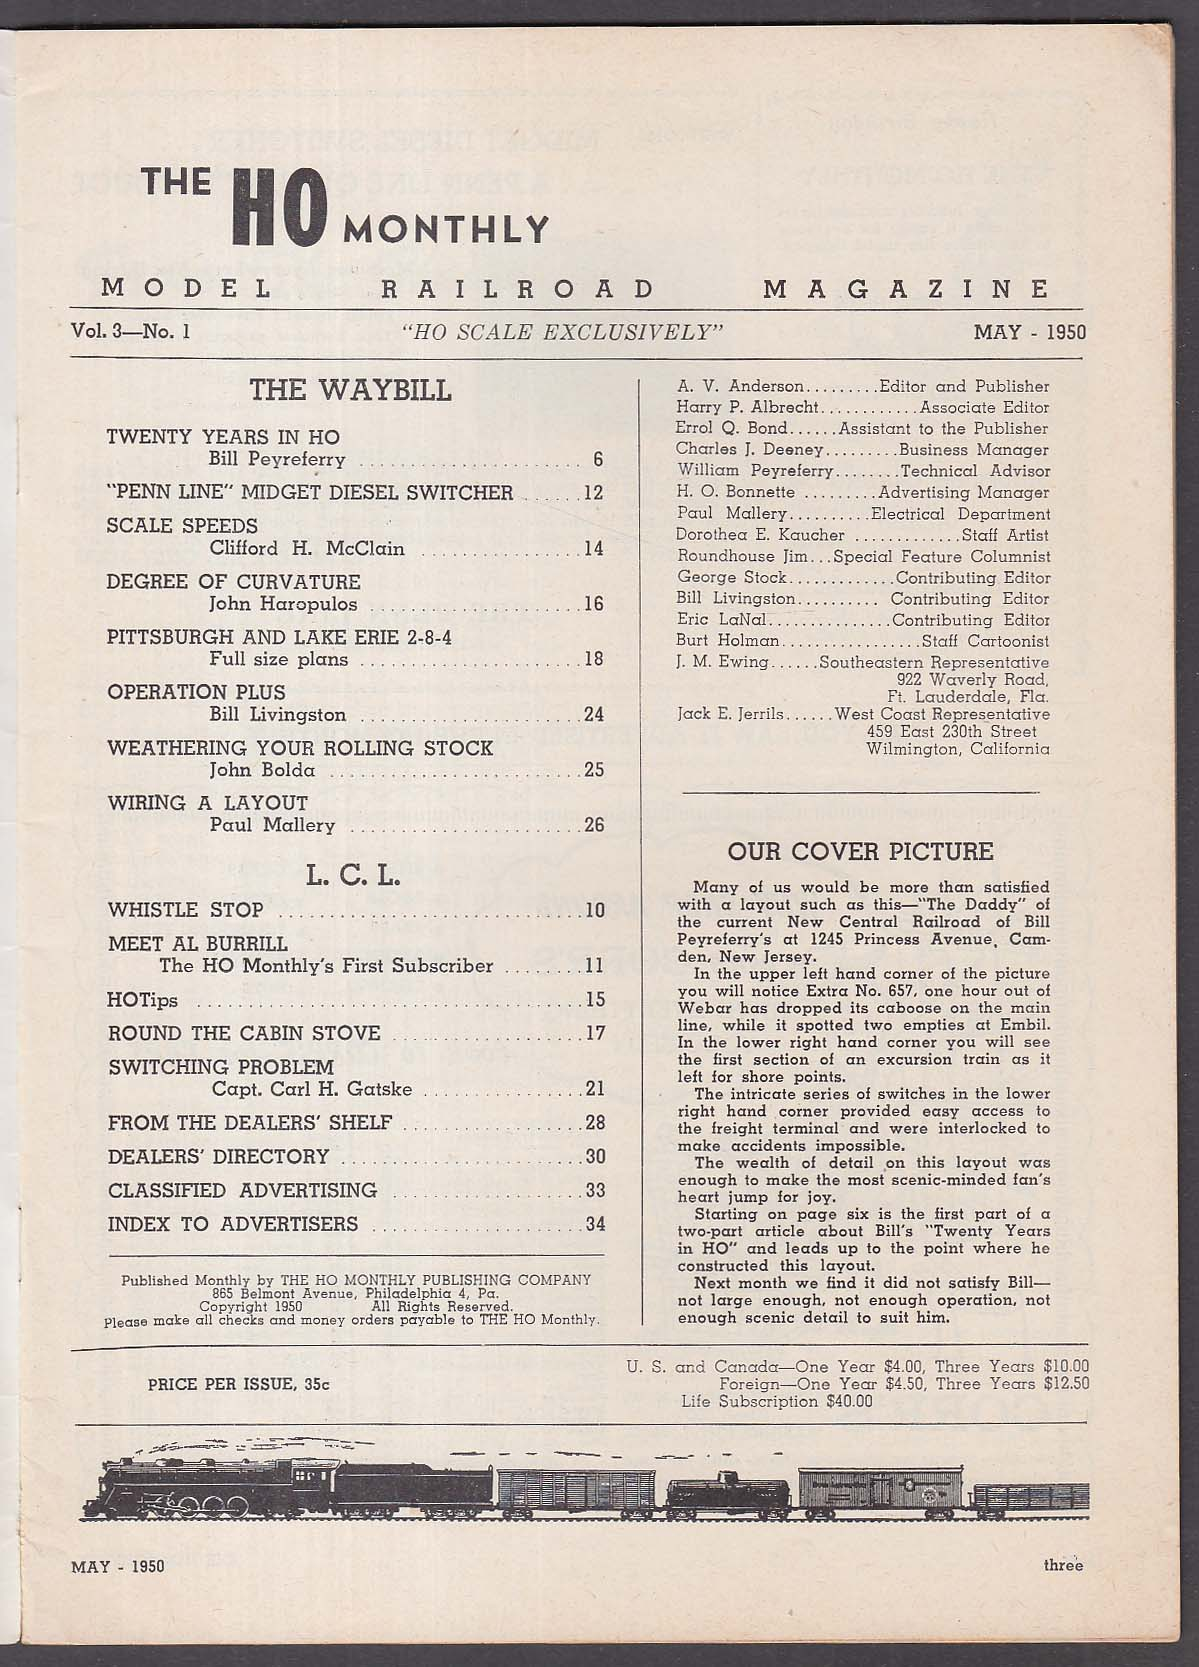 HO MONTHLY Model Railroad Magazine Pittsburgh & Lake Erie 2-8-4 Penn Line 5 1950